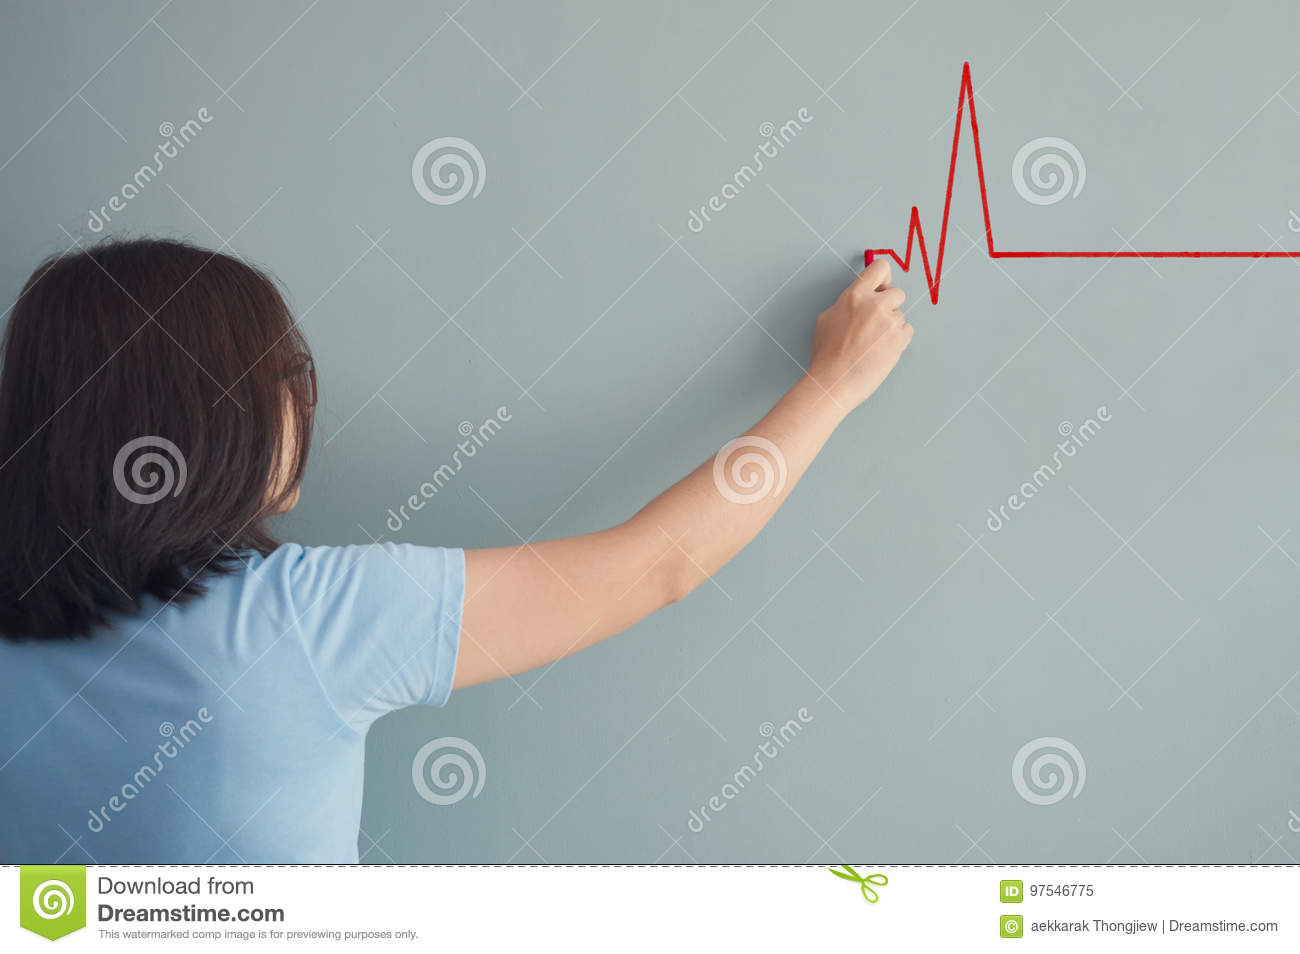 Woman drawing heartbeat with red chalk on wall.